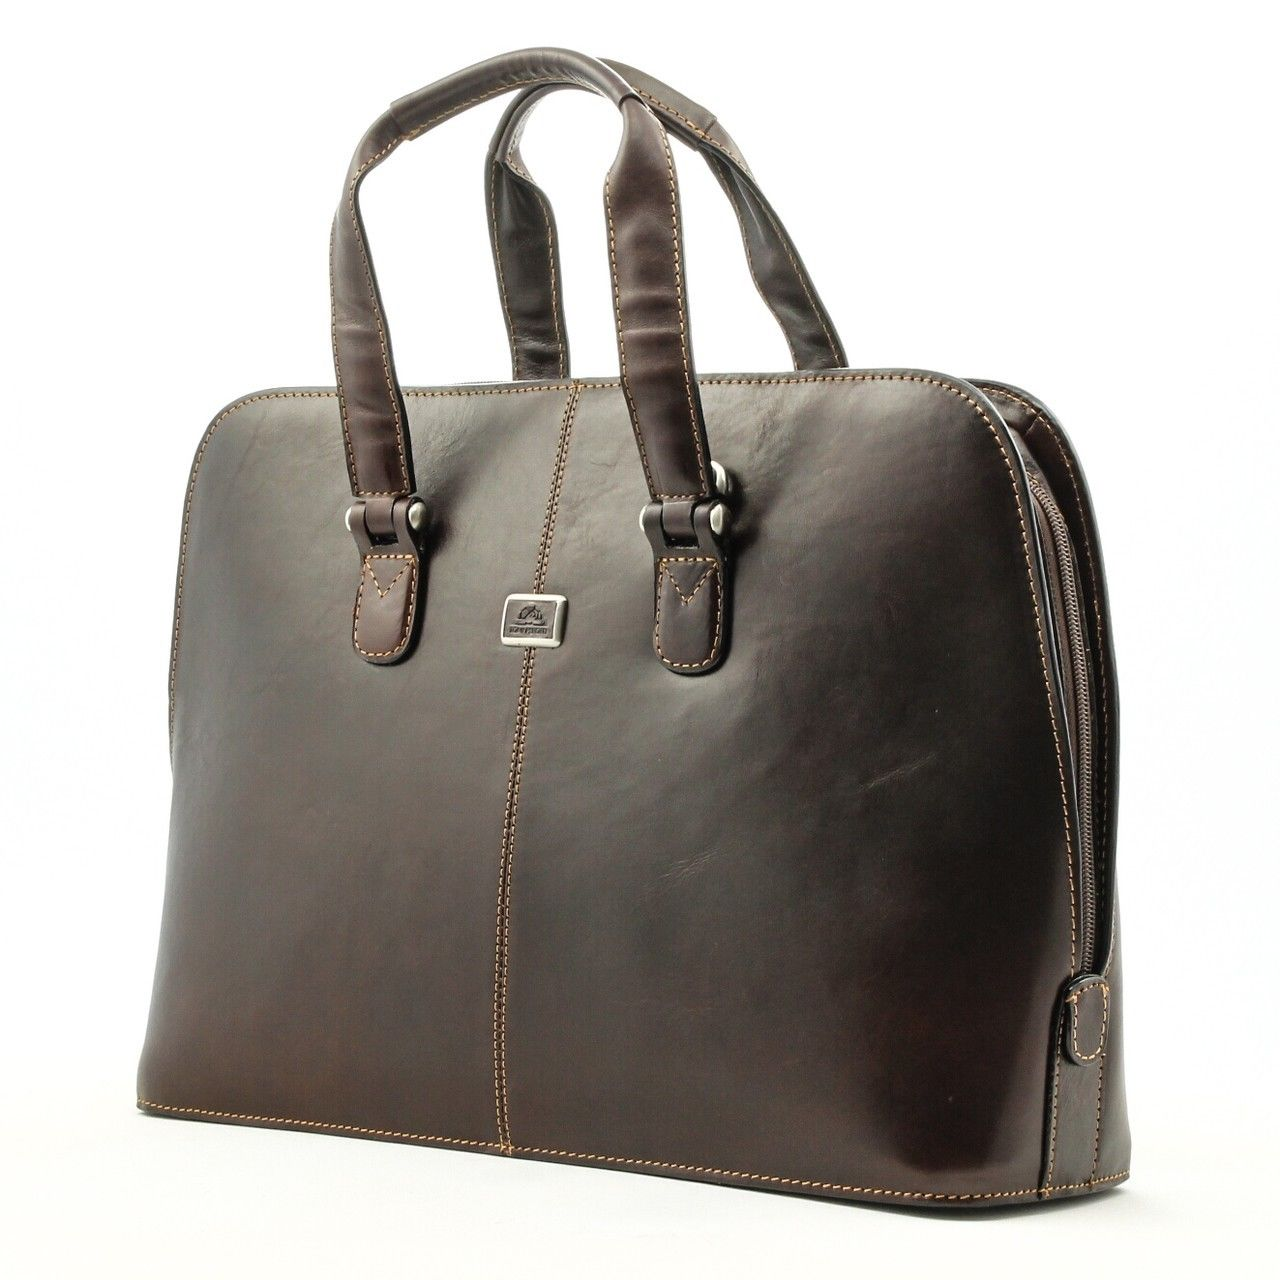 Simple  Amp Accessories Gt Women39s Handbags Amp Bags Gt Briefcases A